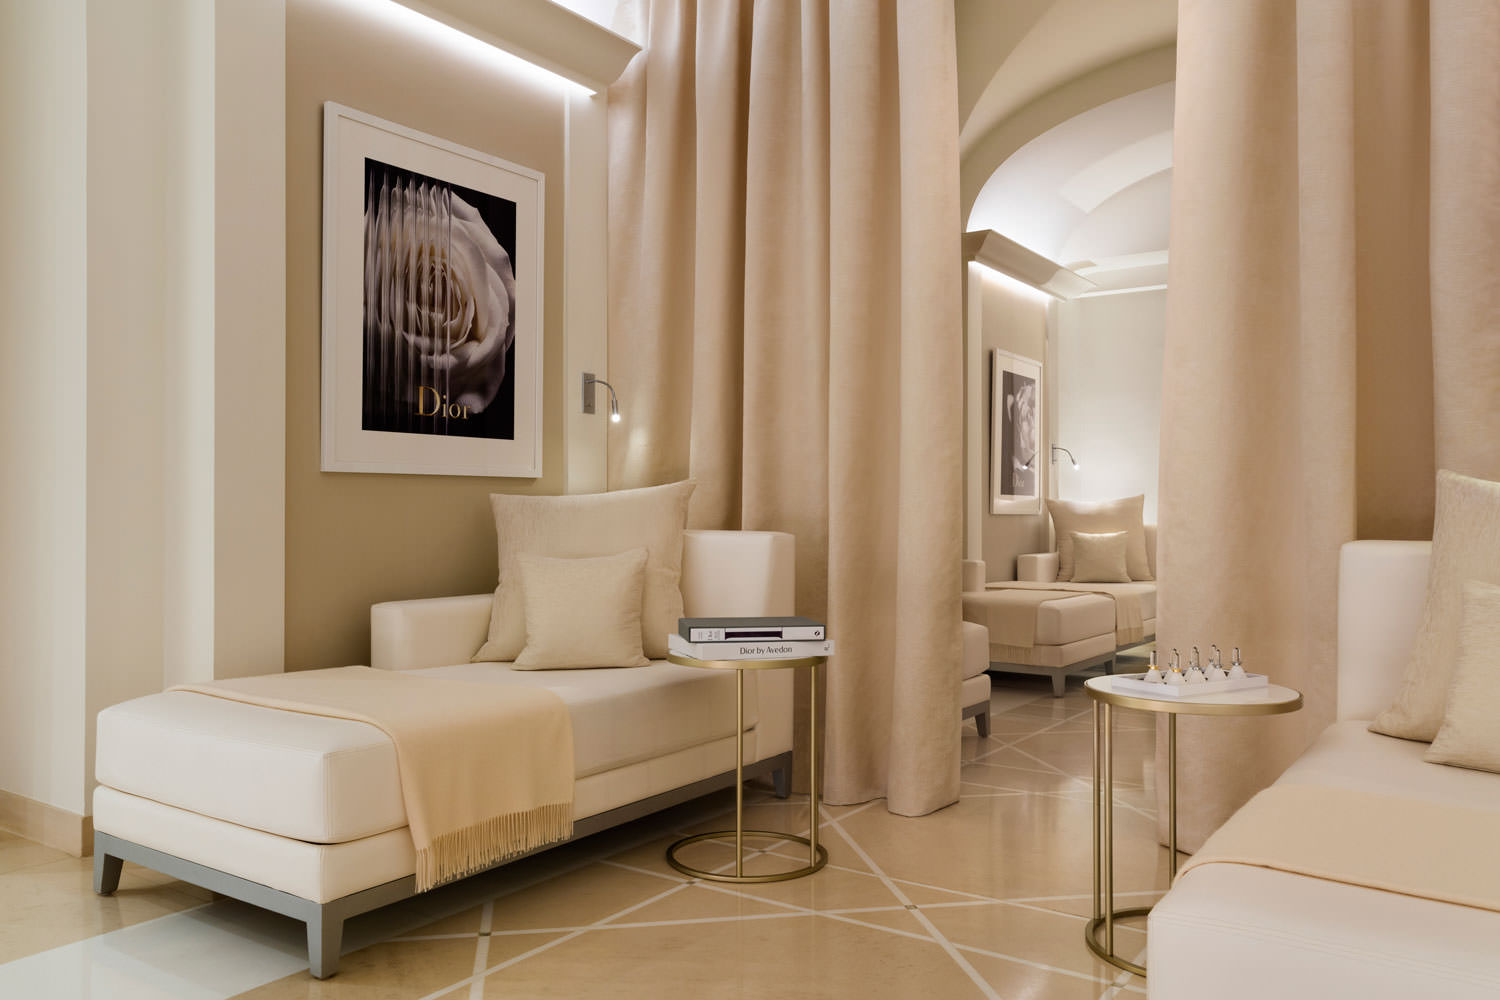 Dior Institut's new look at the Plaza Athénée